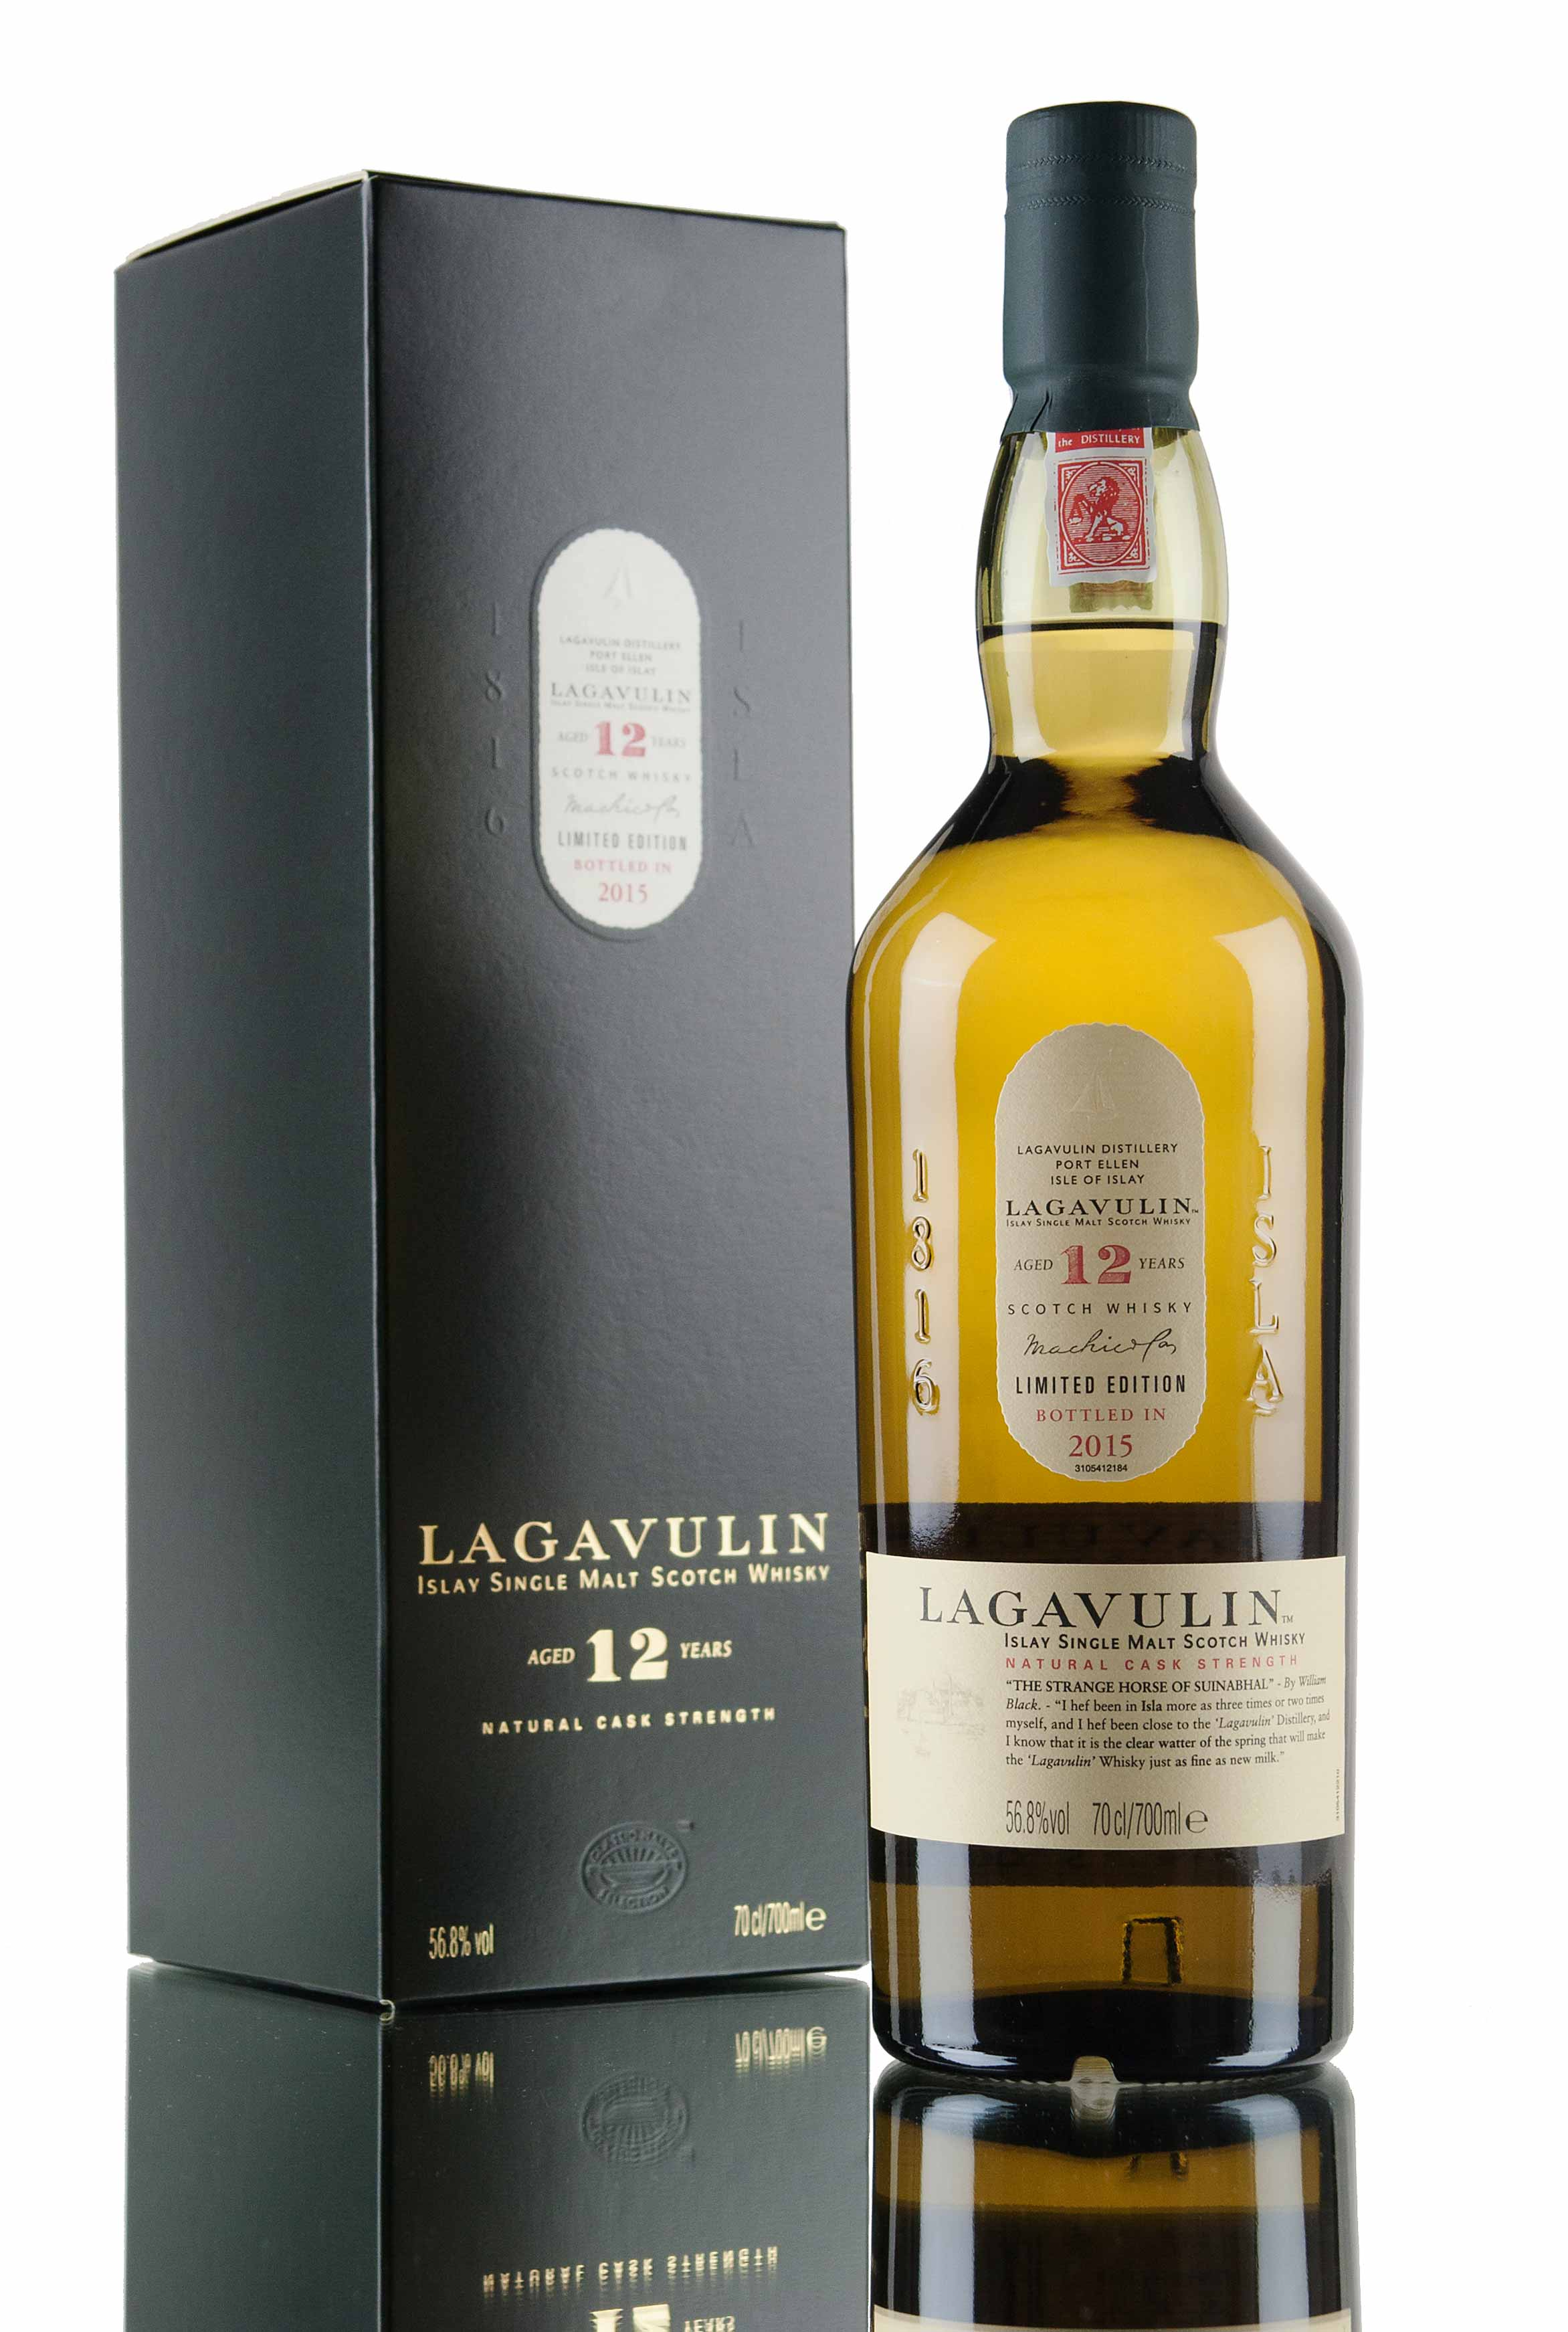 Lagavulin 12 Year Old / 2015 Special Release